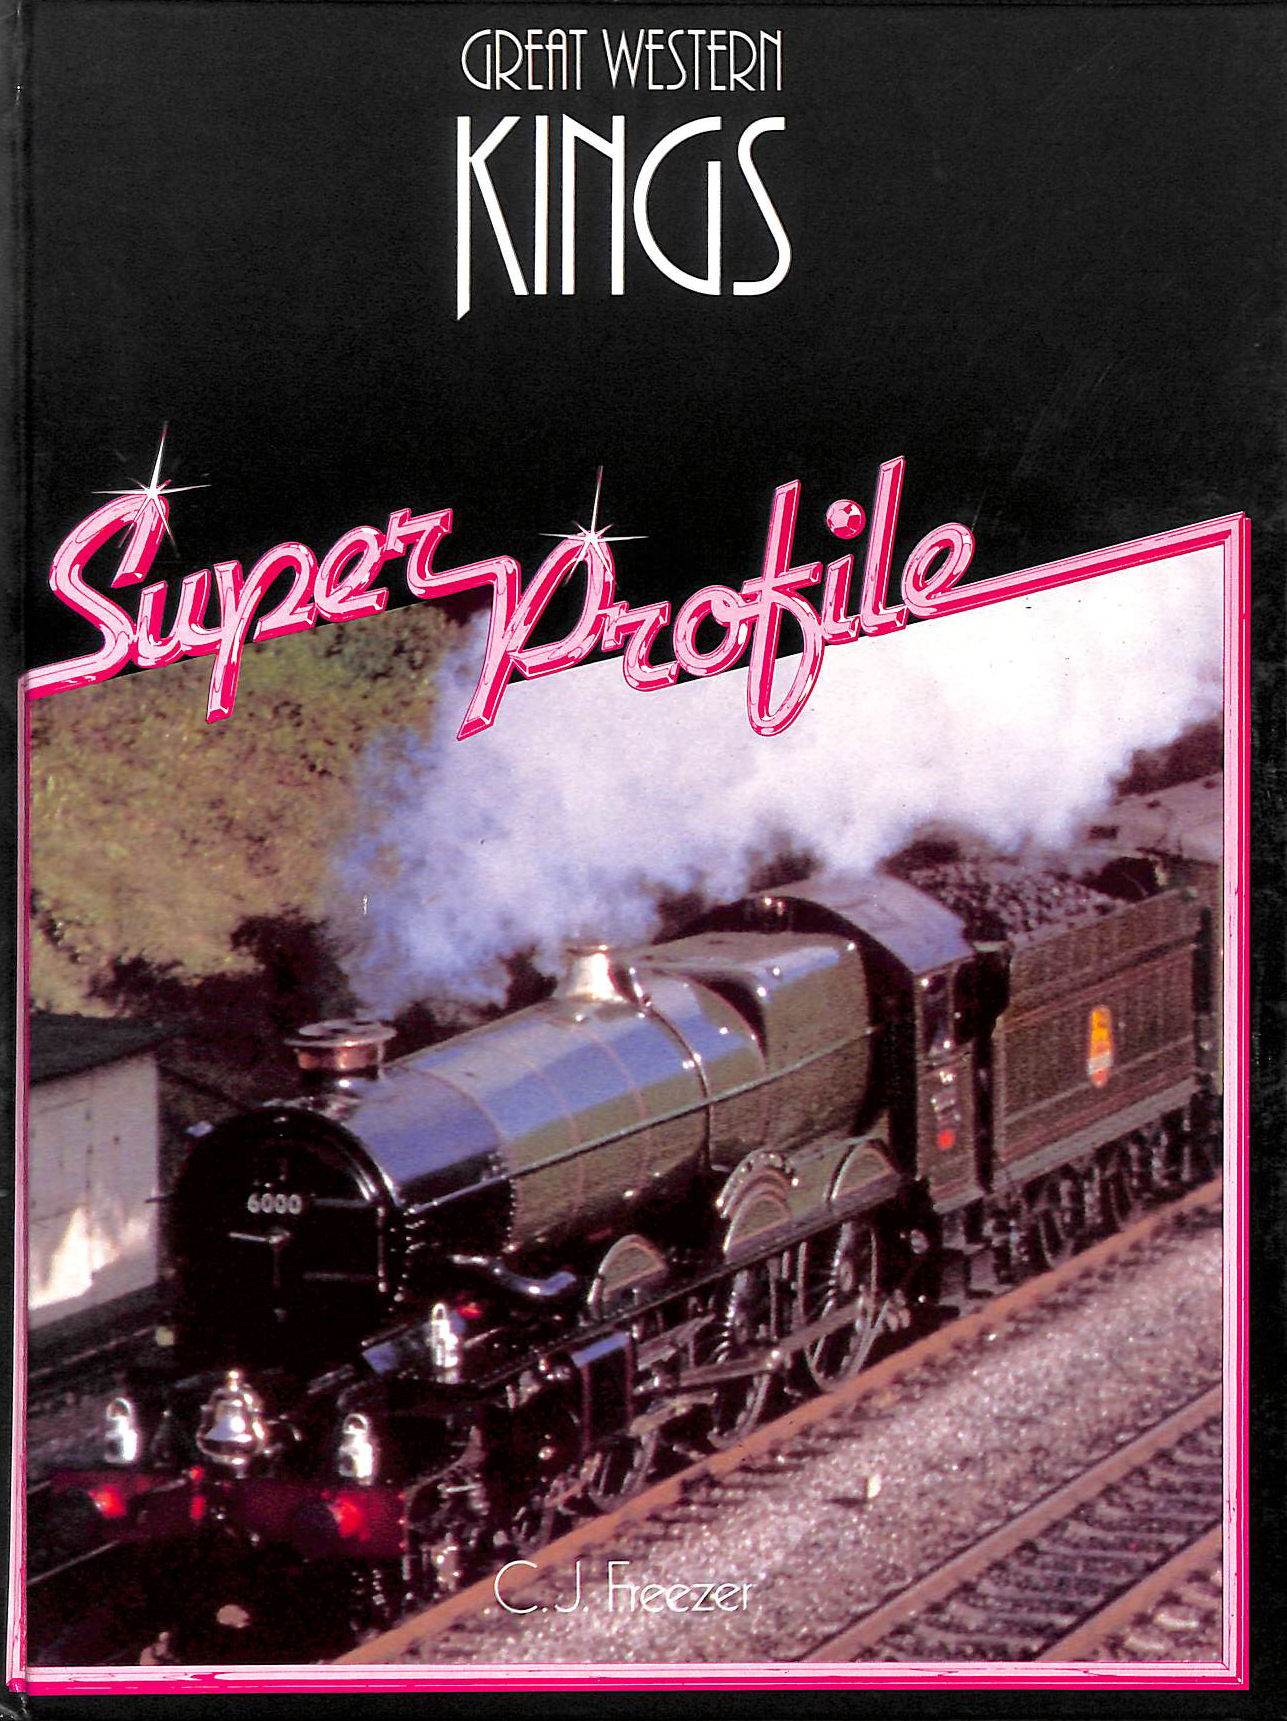 Image for Great Western Kings.